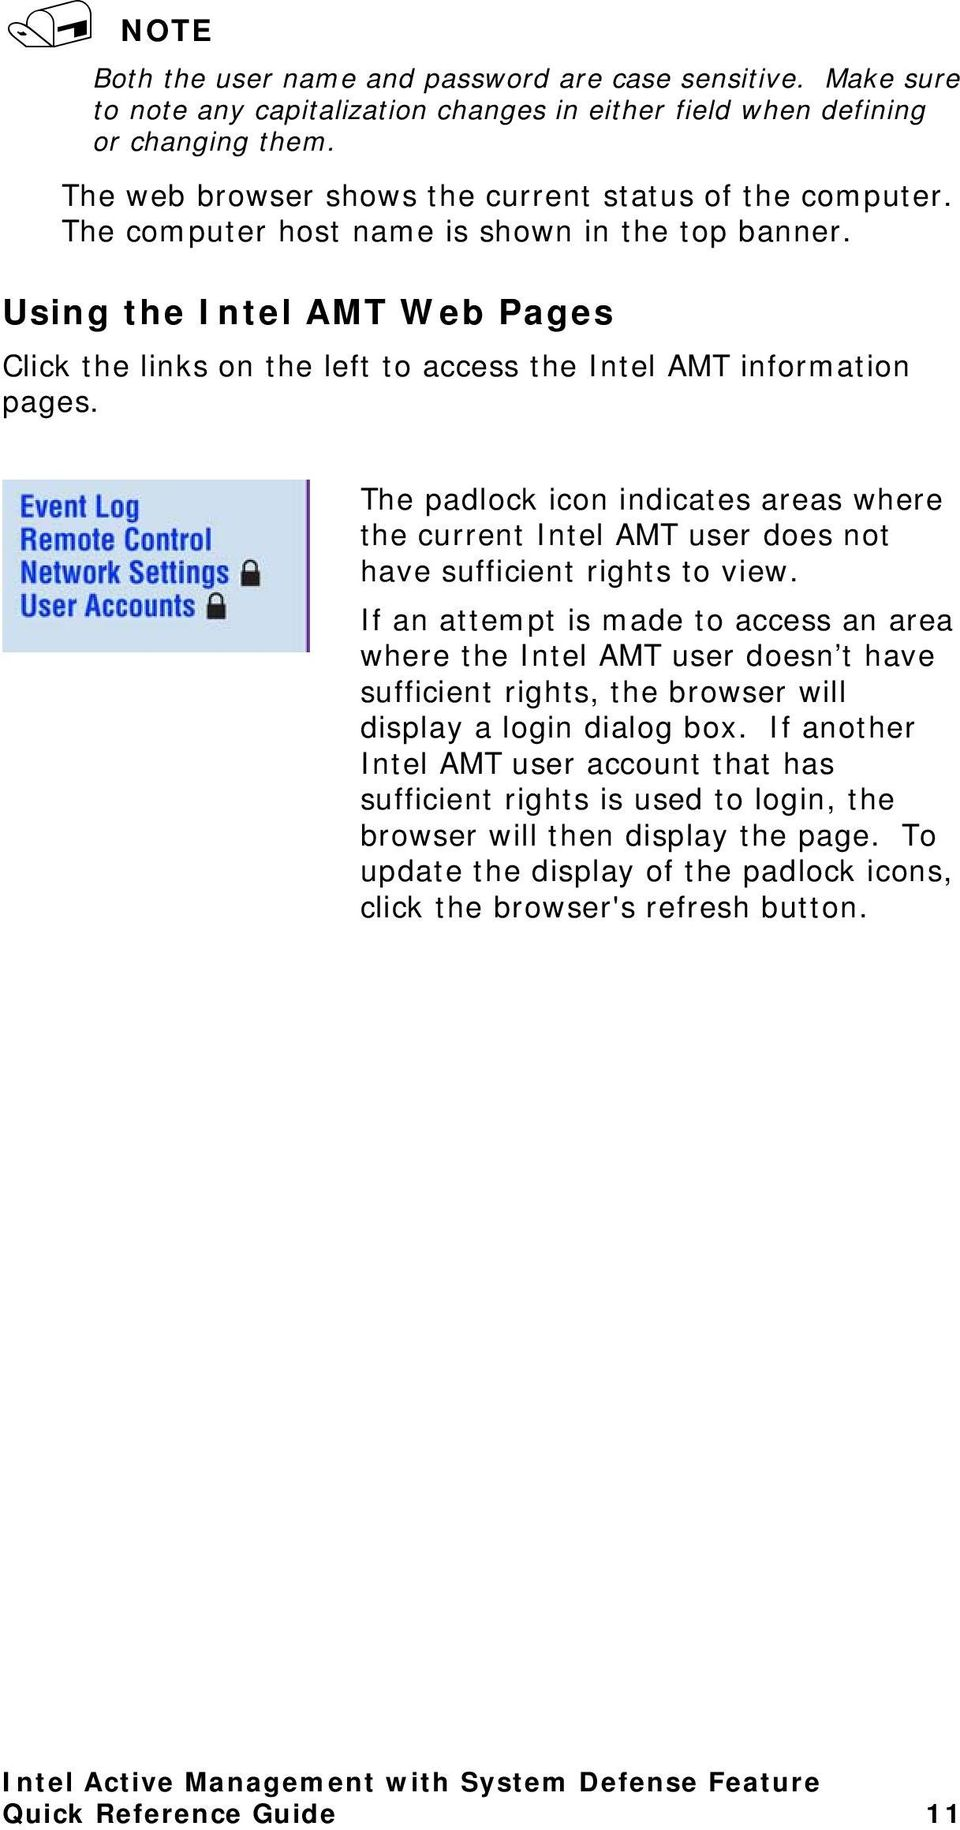 Using the Intel AMT Web Pages Click the links on the left to access the Intel AMT information pages.